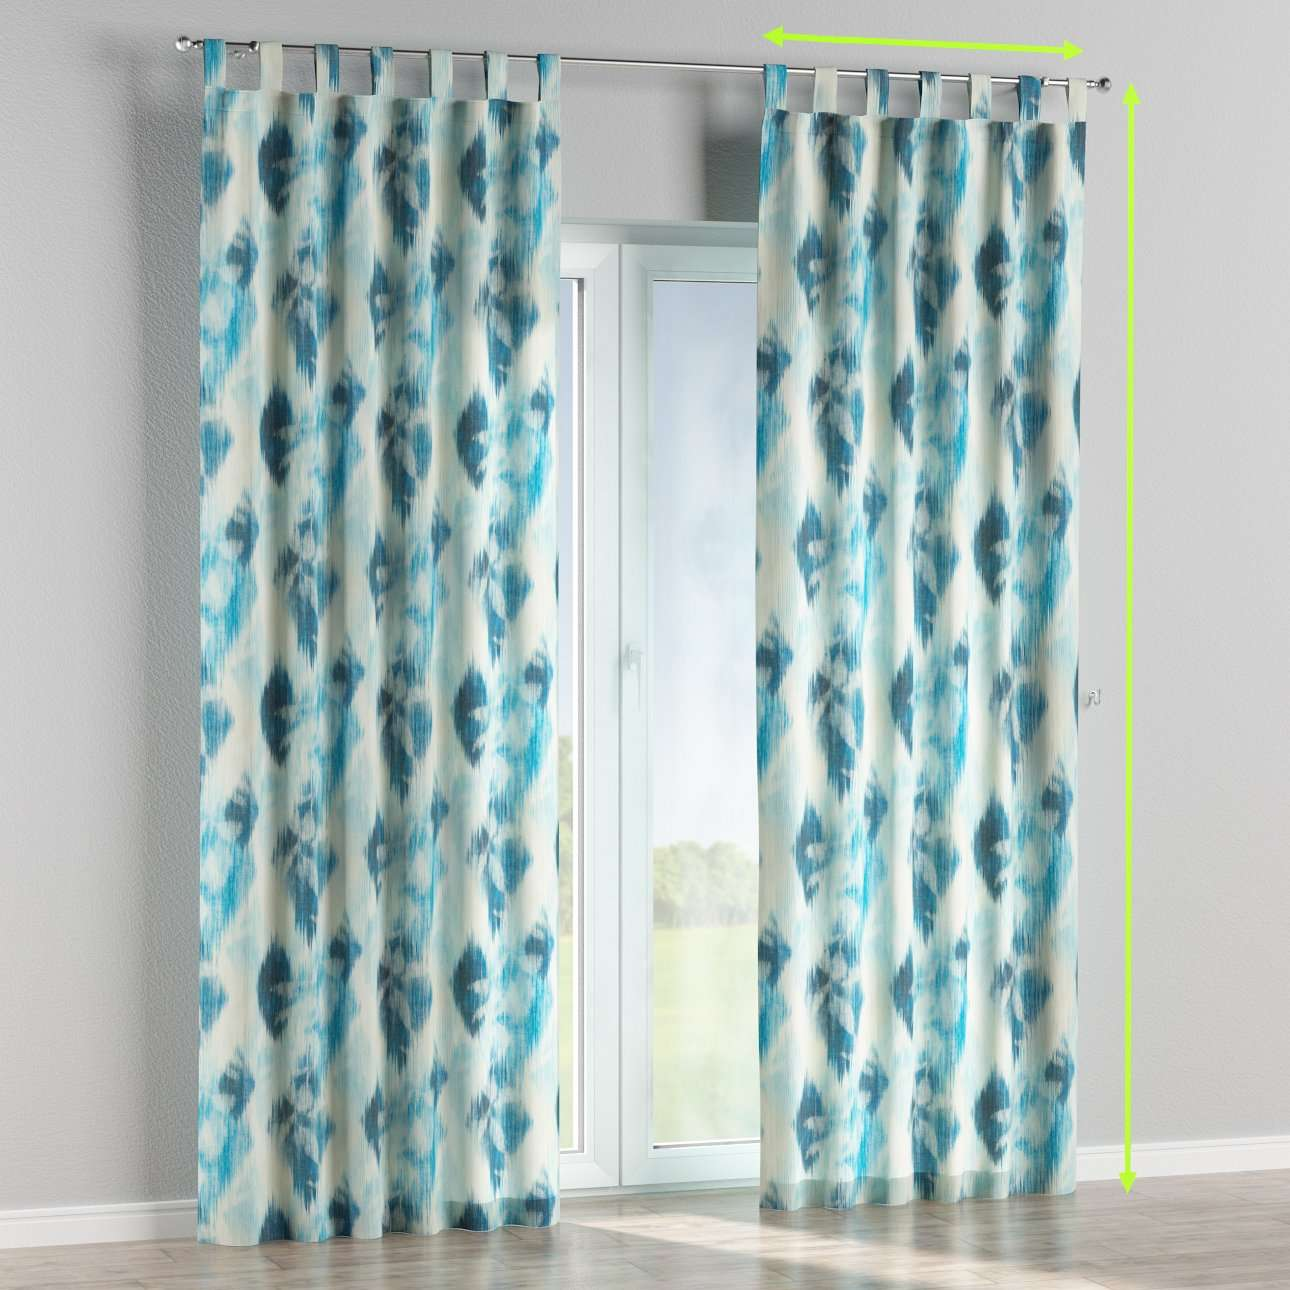 Tab top curtains in collection Aquarelle, fabric: 140-71